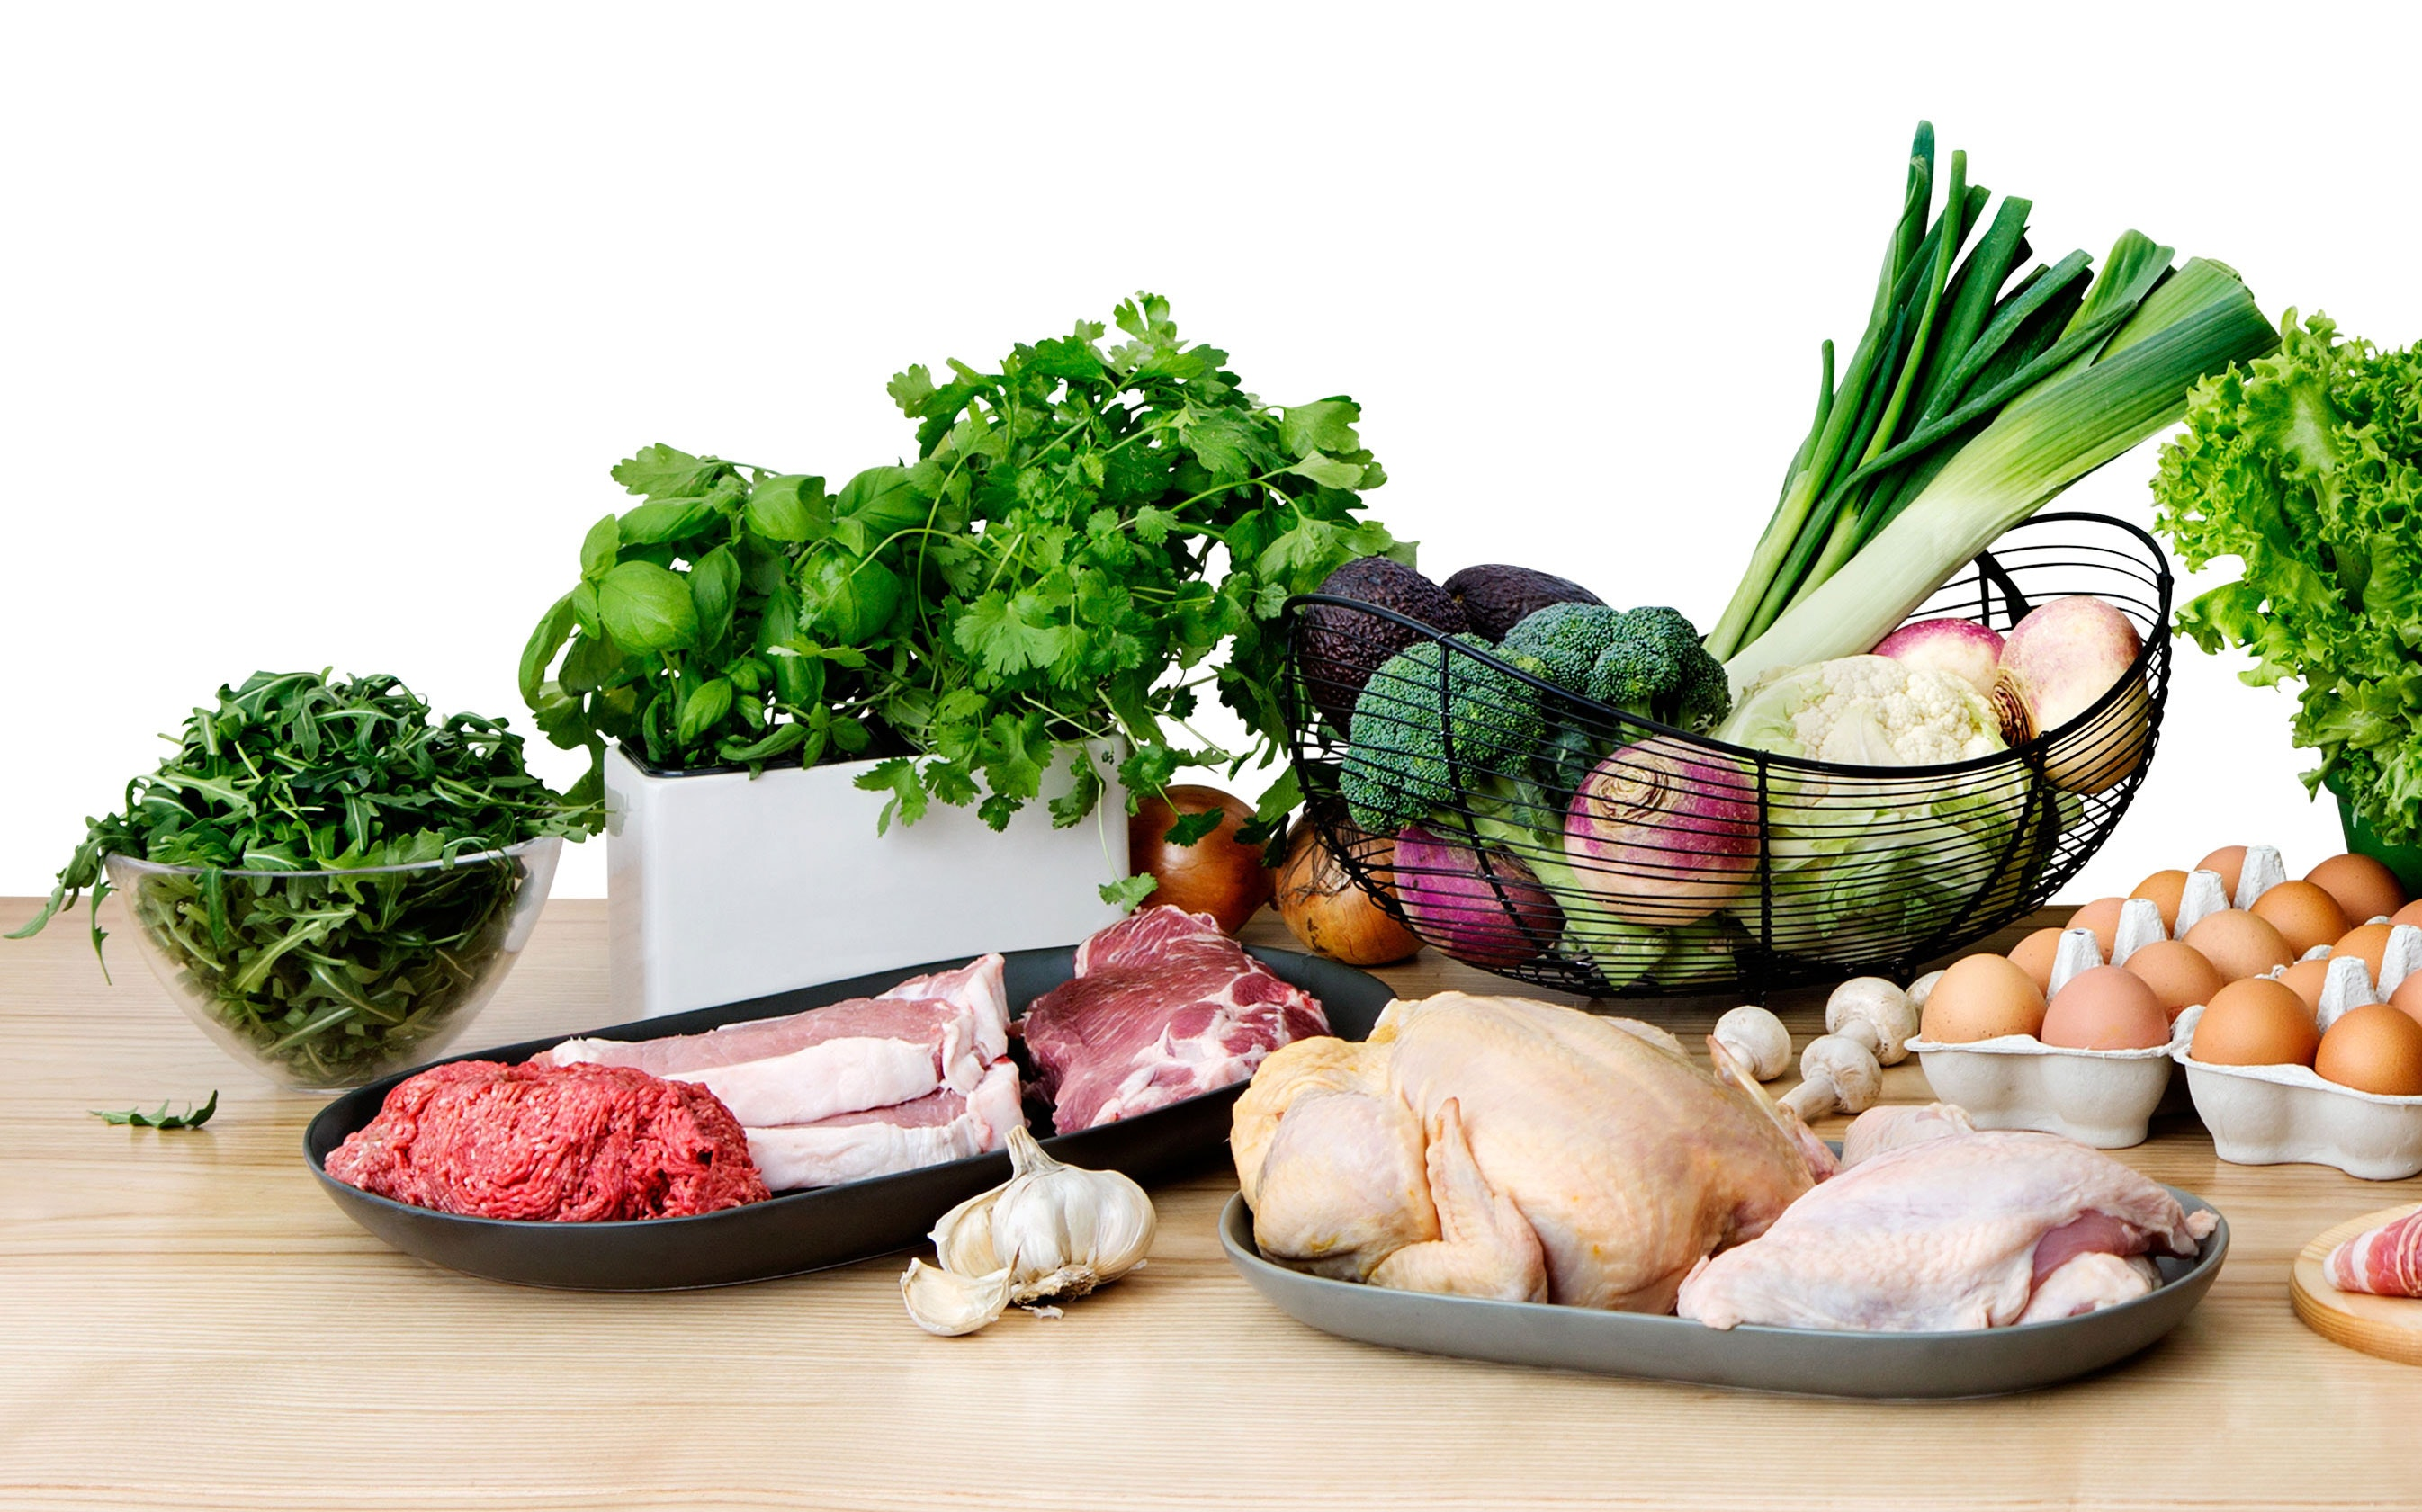 What natural foods reduce high blood pressure